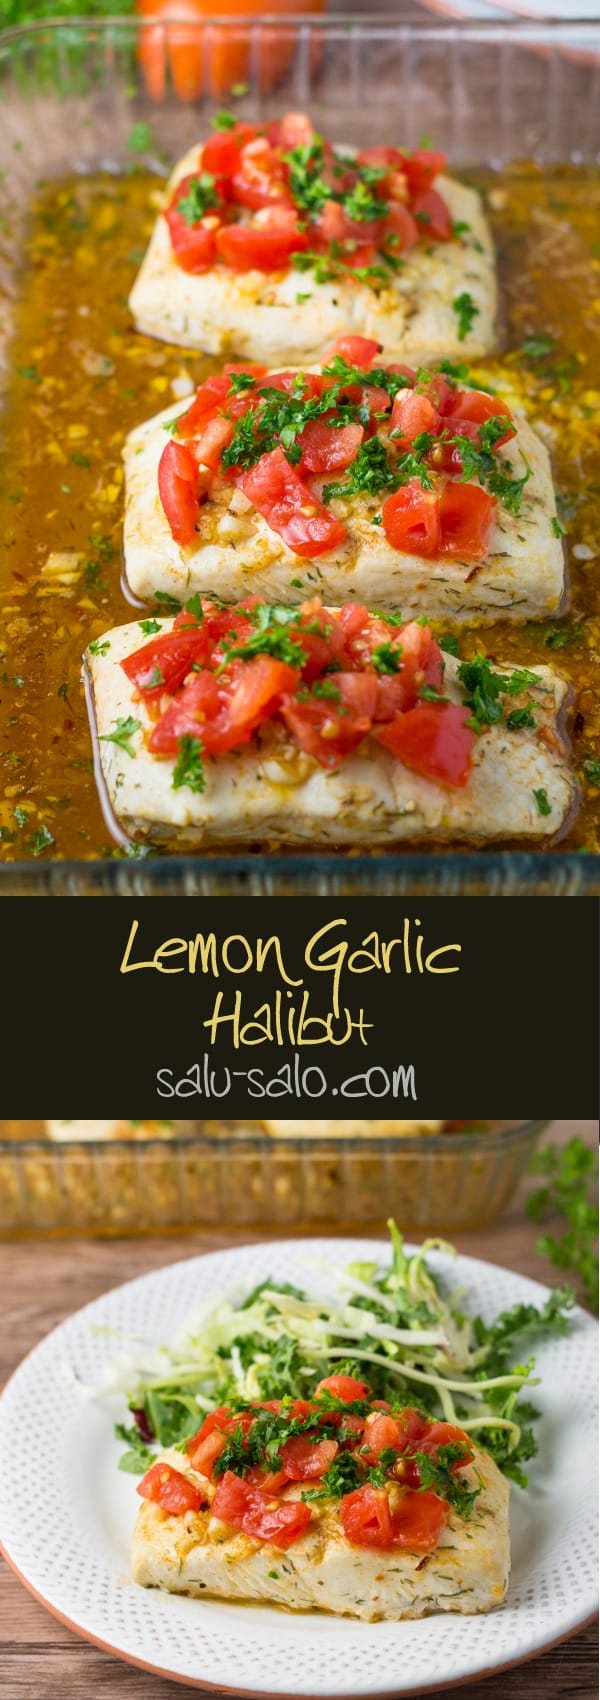 Lemon Garlic Halibut